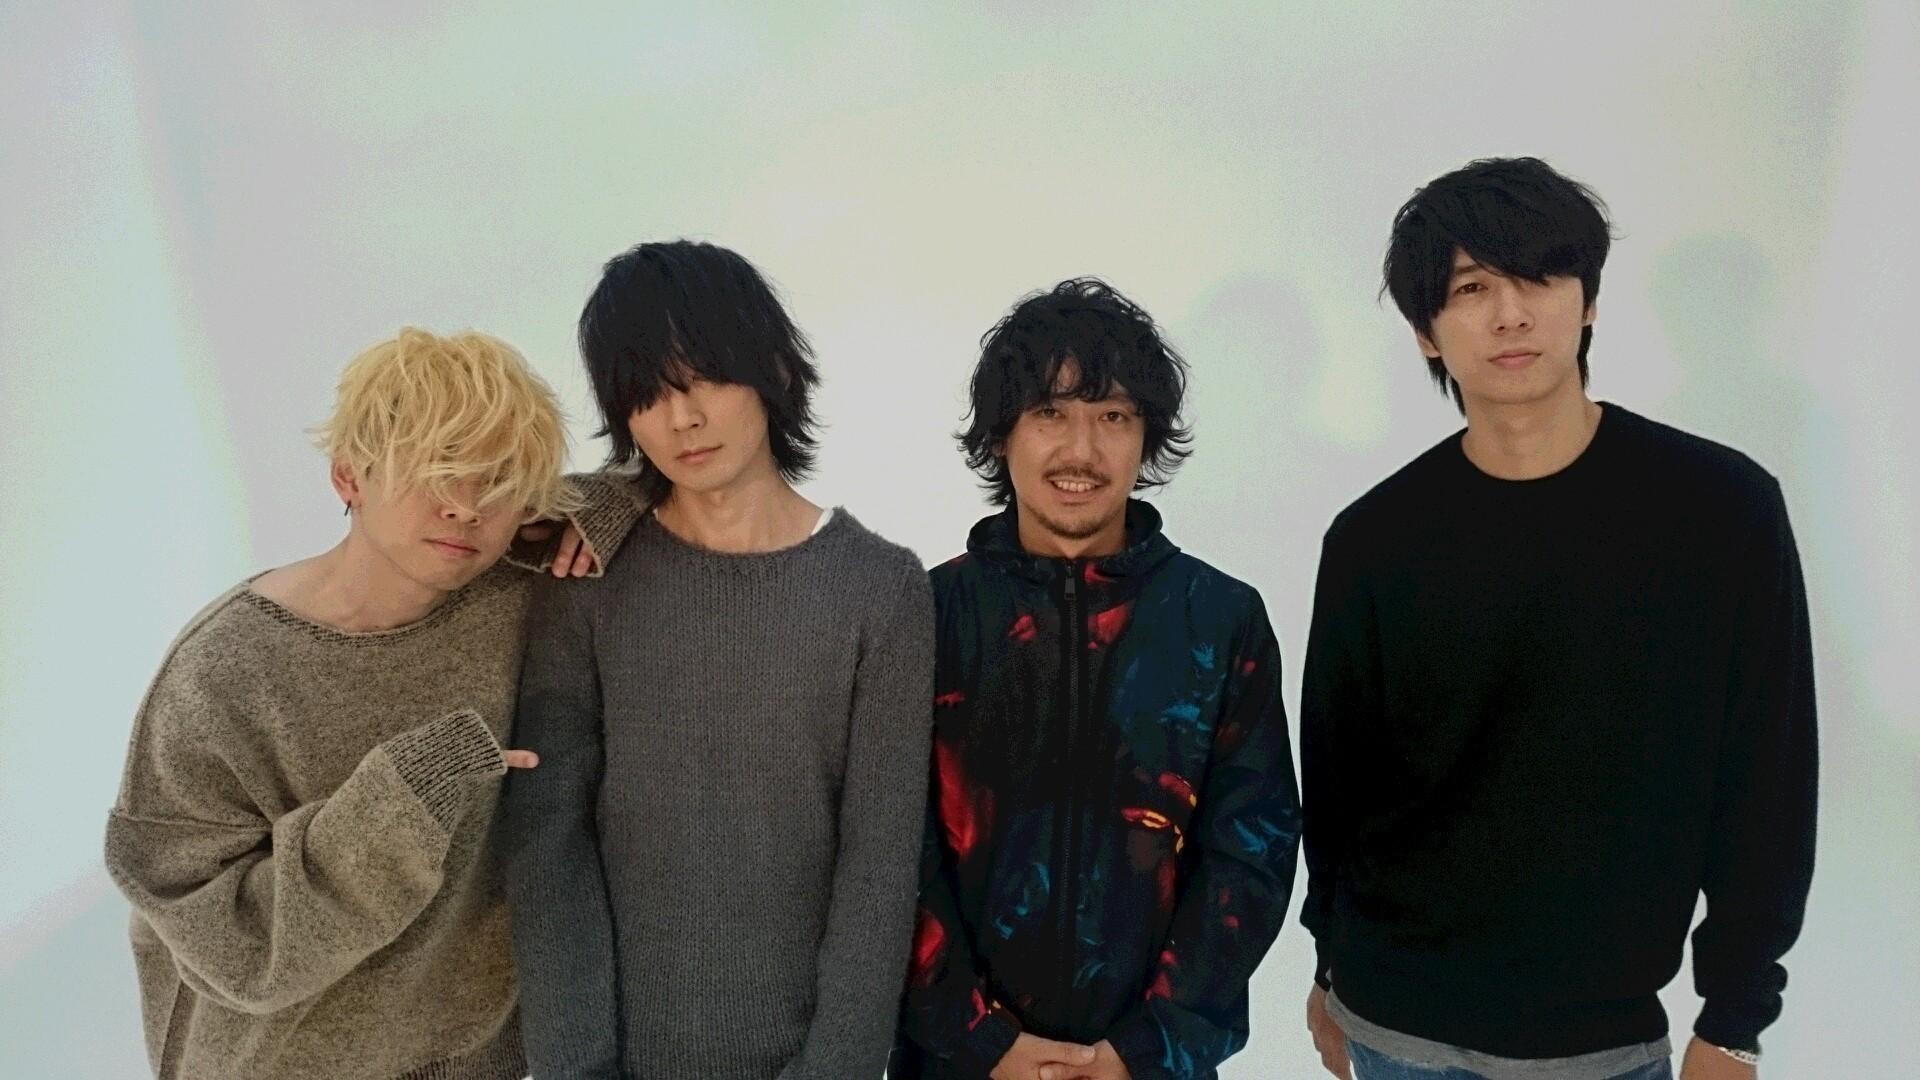 bump of chicken少しアップ